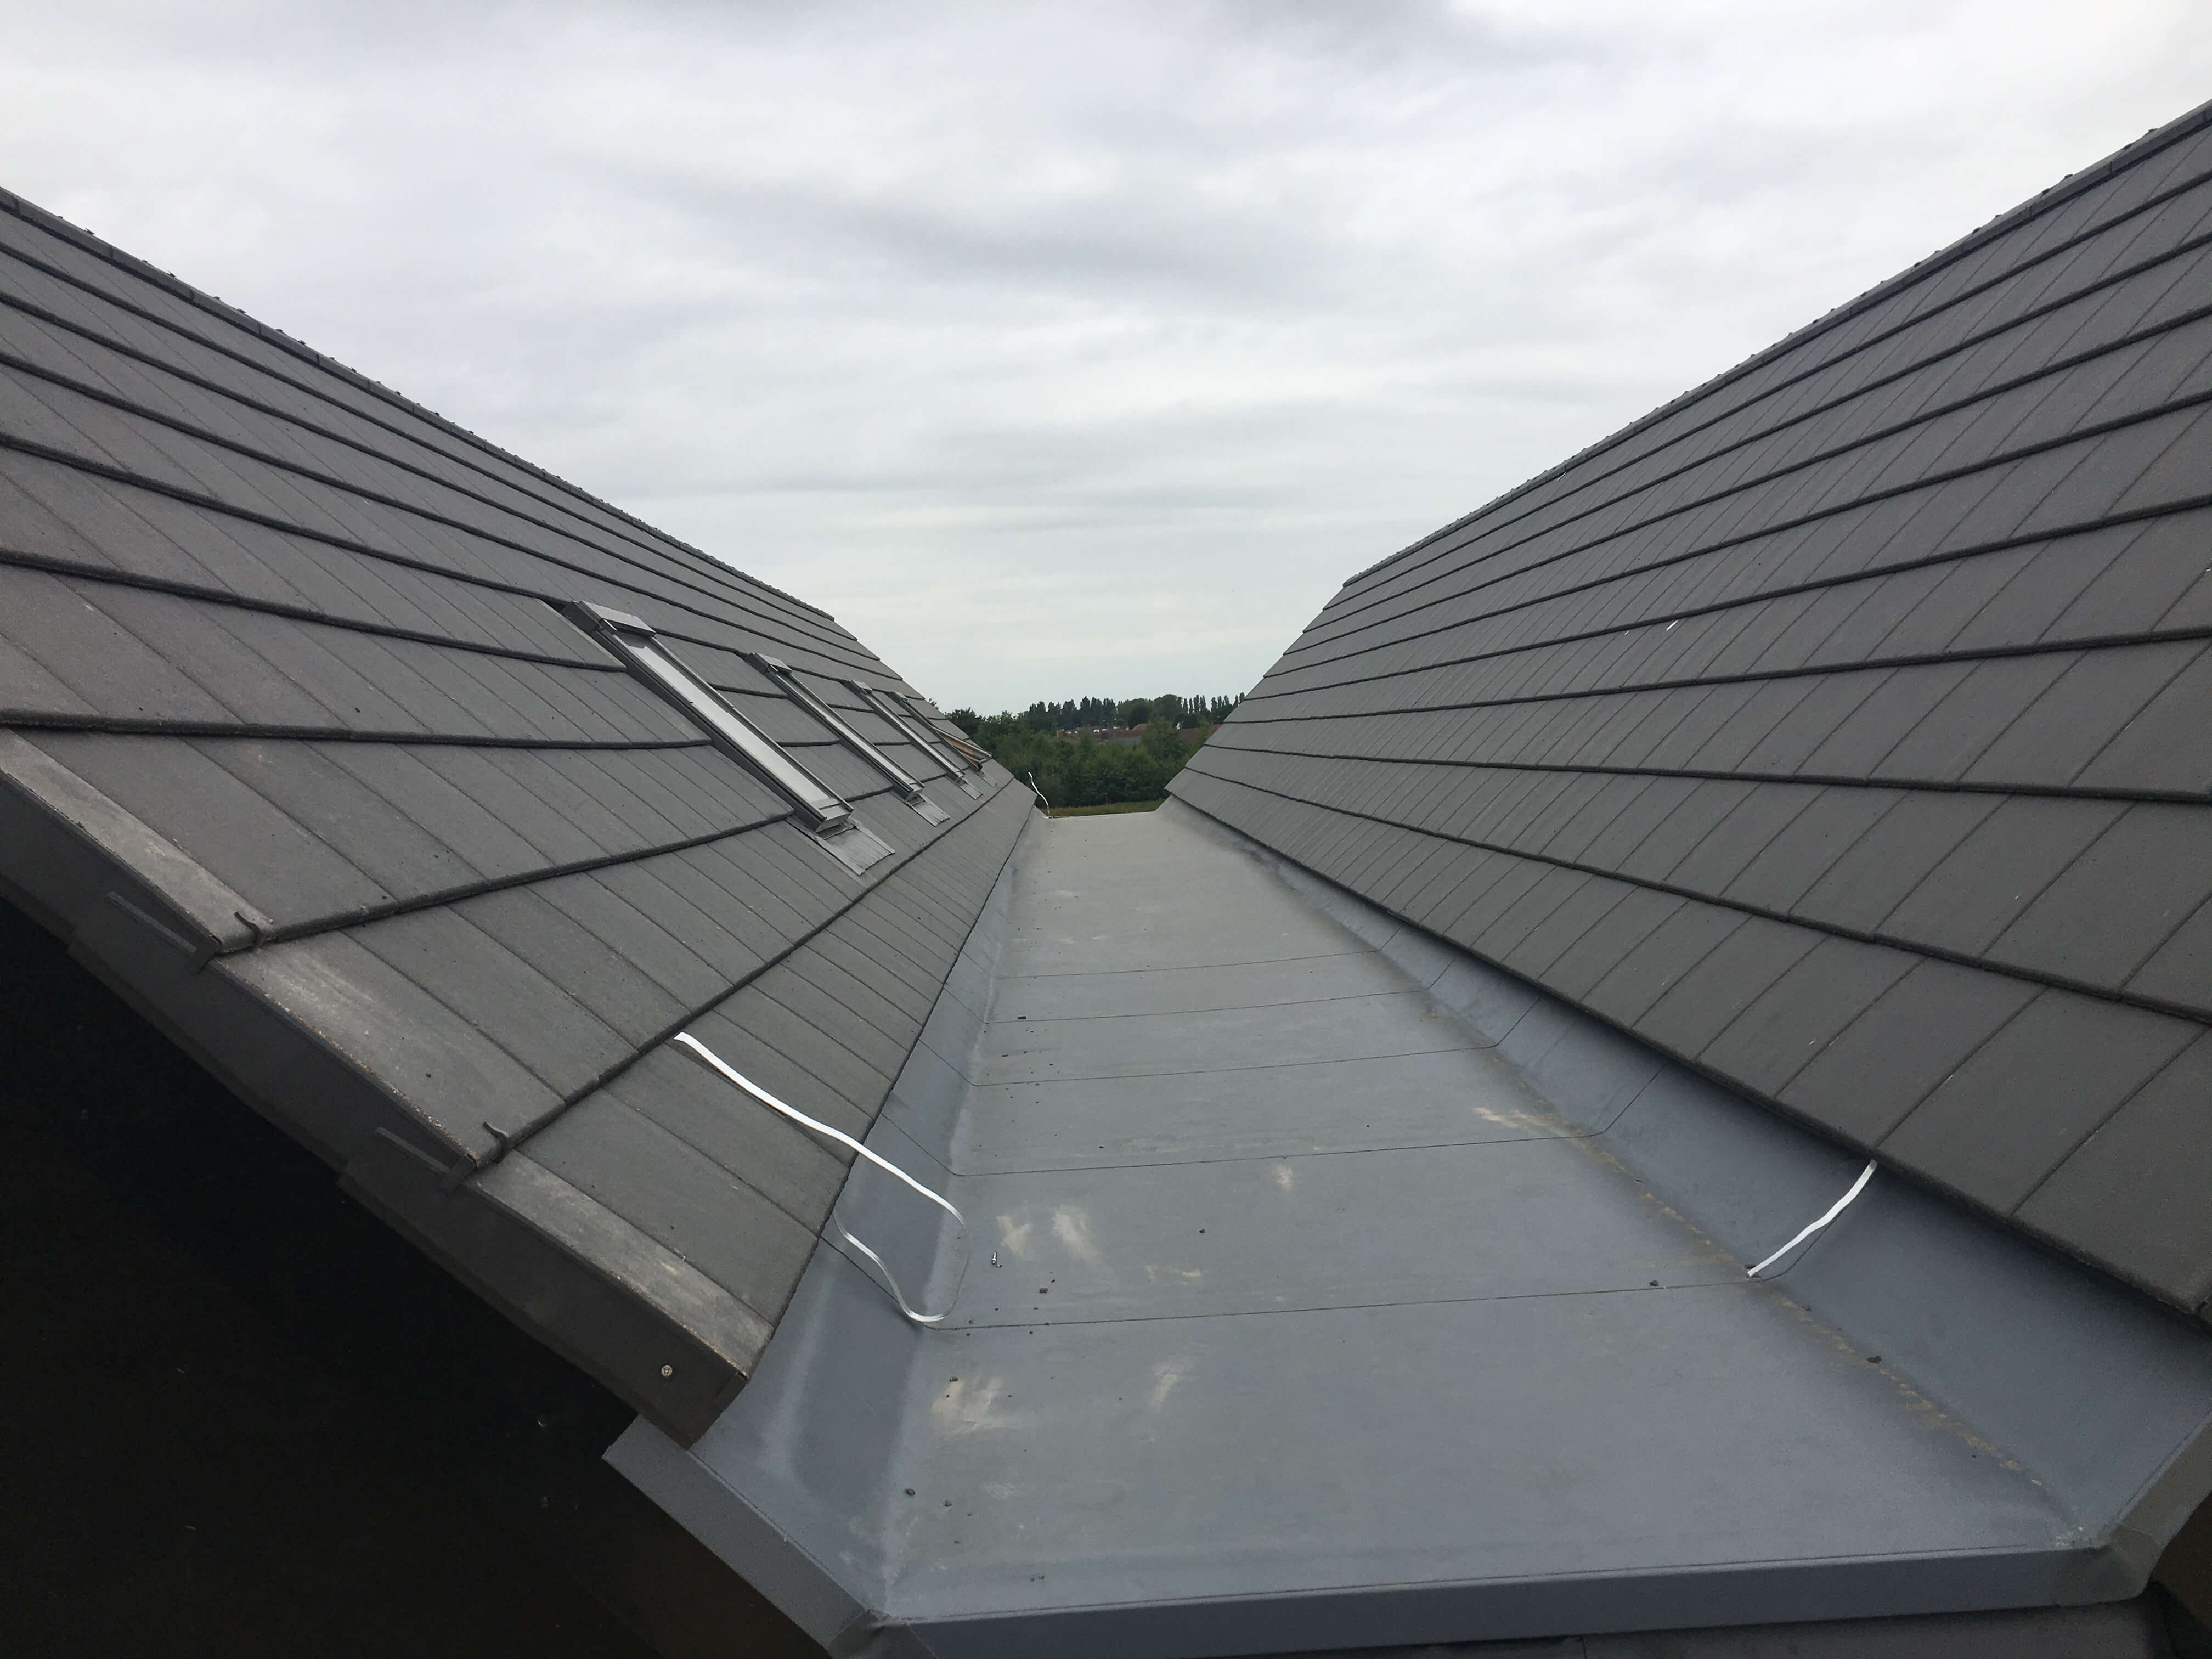 Fosse Specialist Roofing Installers Of Pitched Flat And Single Ply Roofing